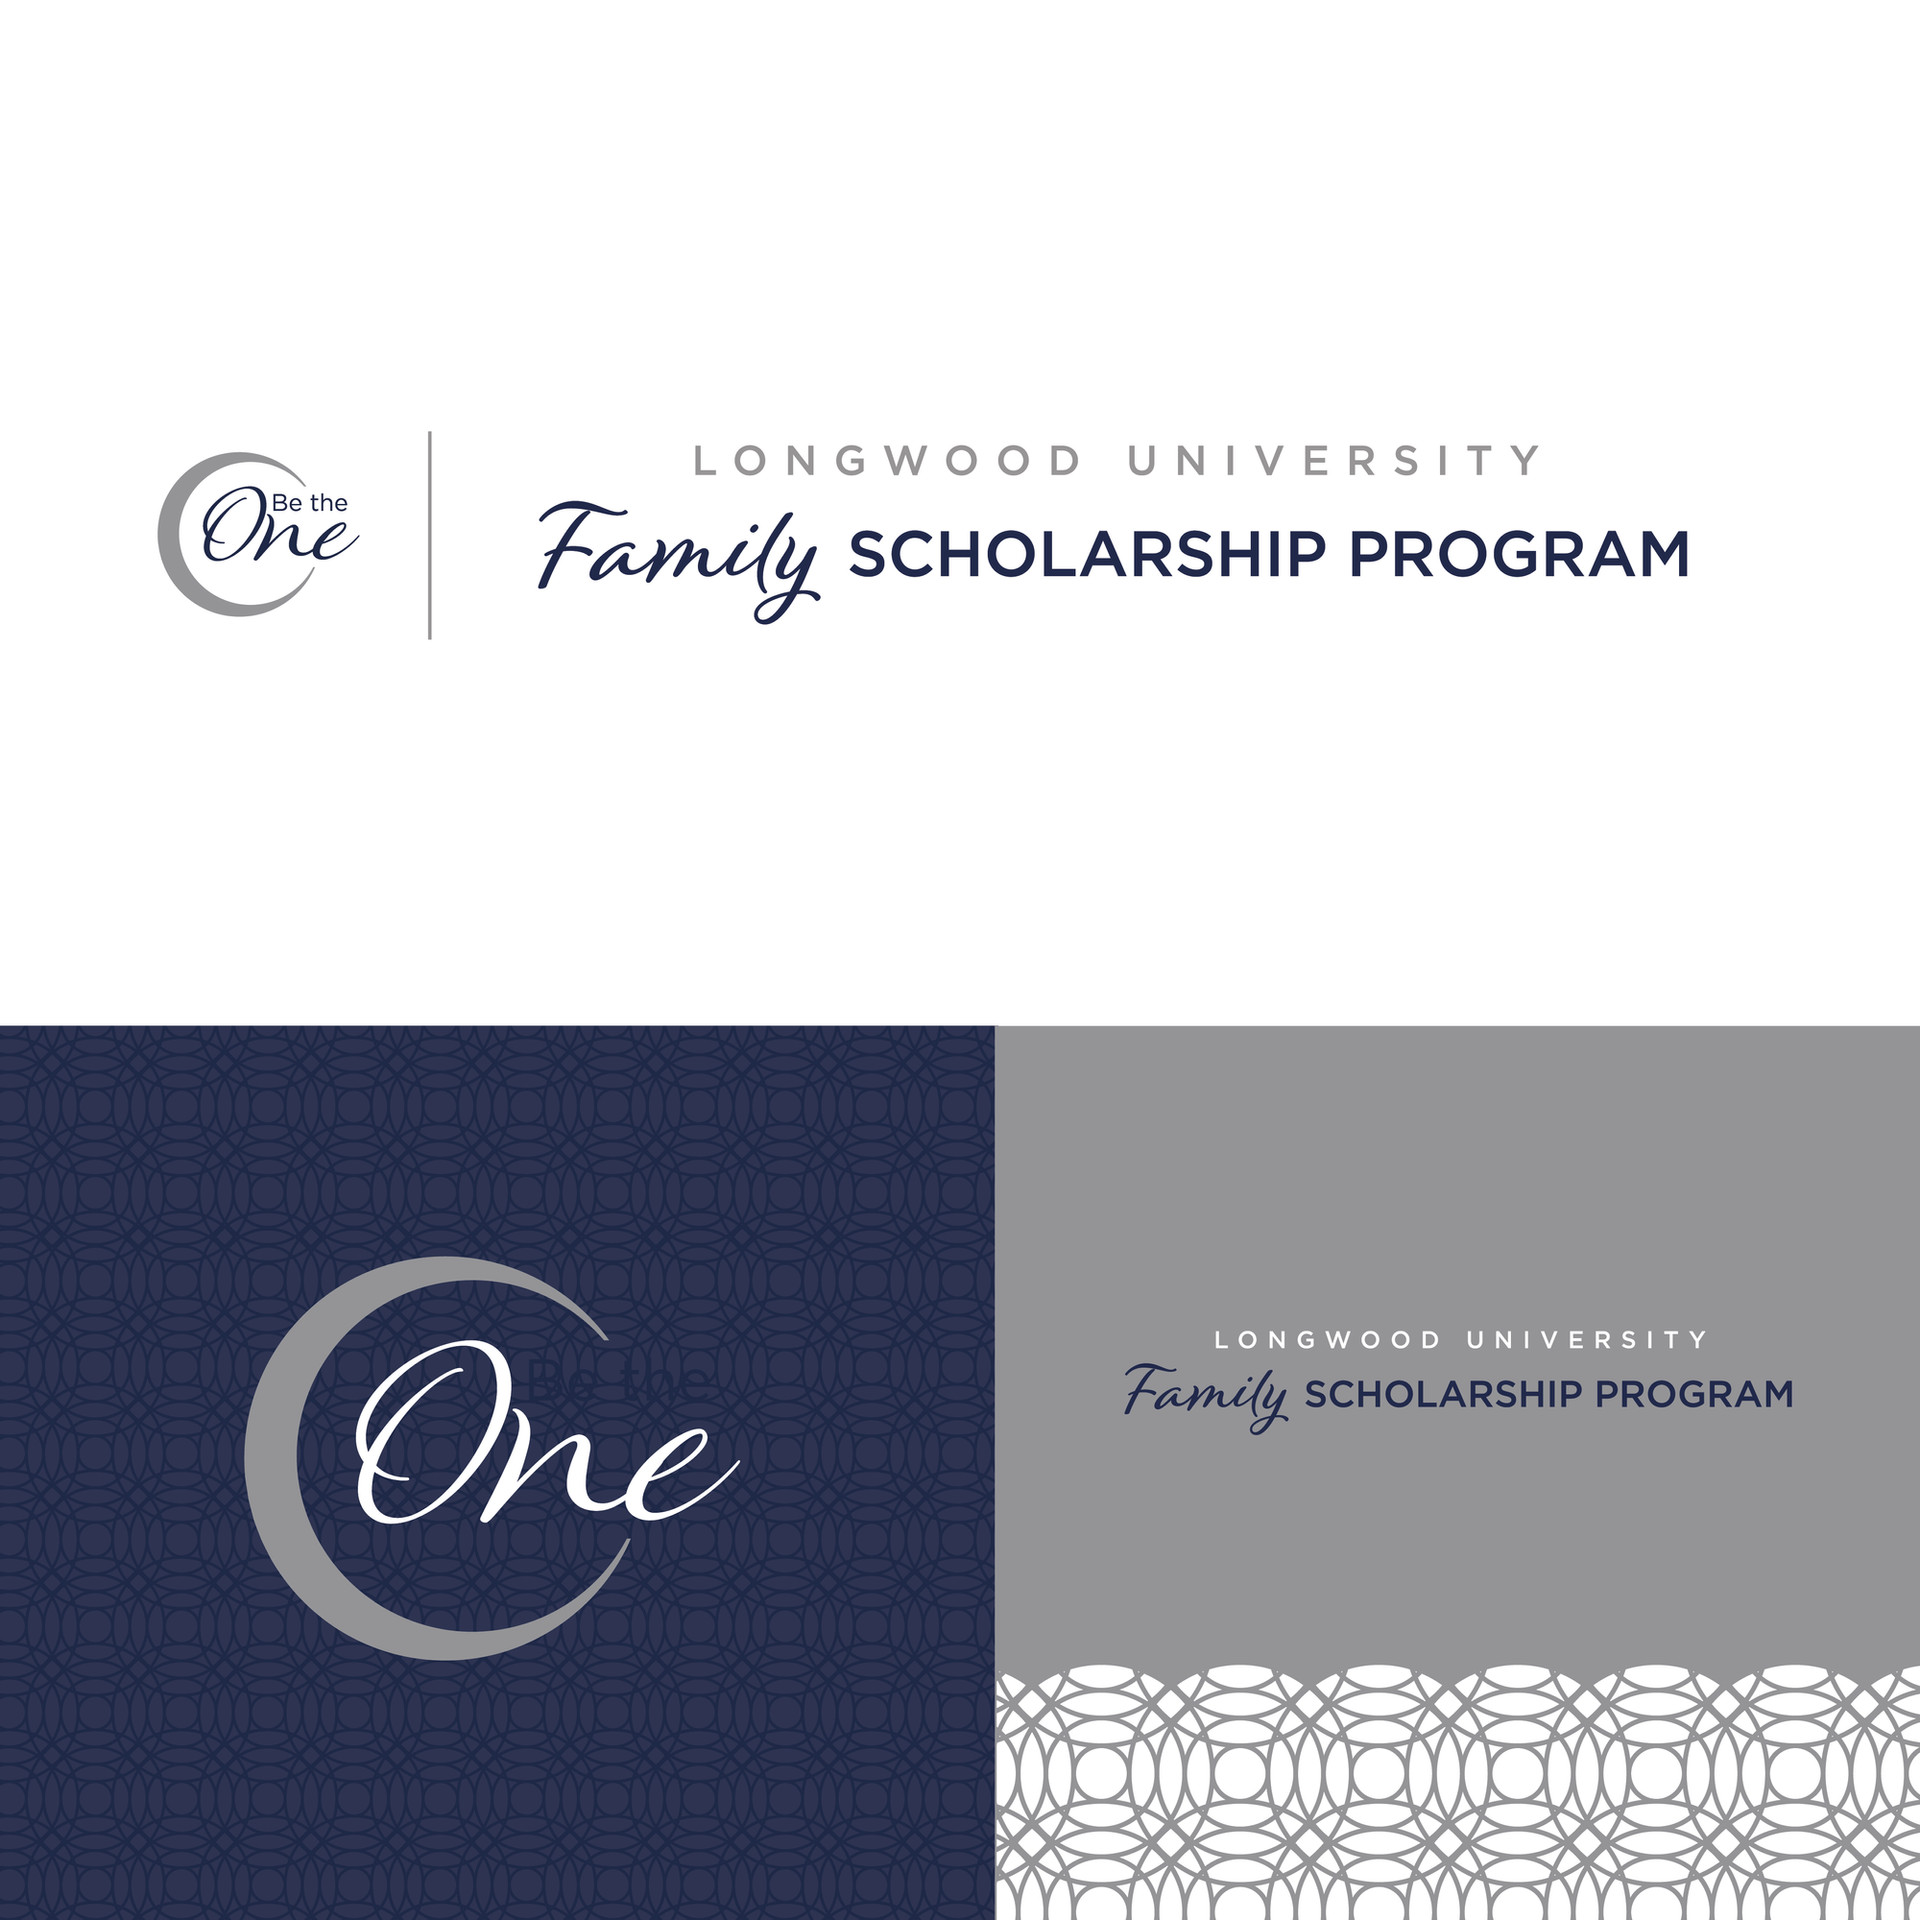 Be the One Family Scholarship Program